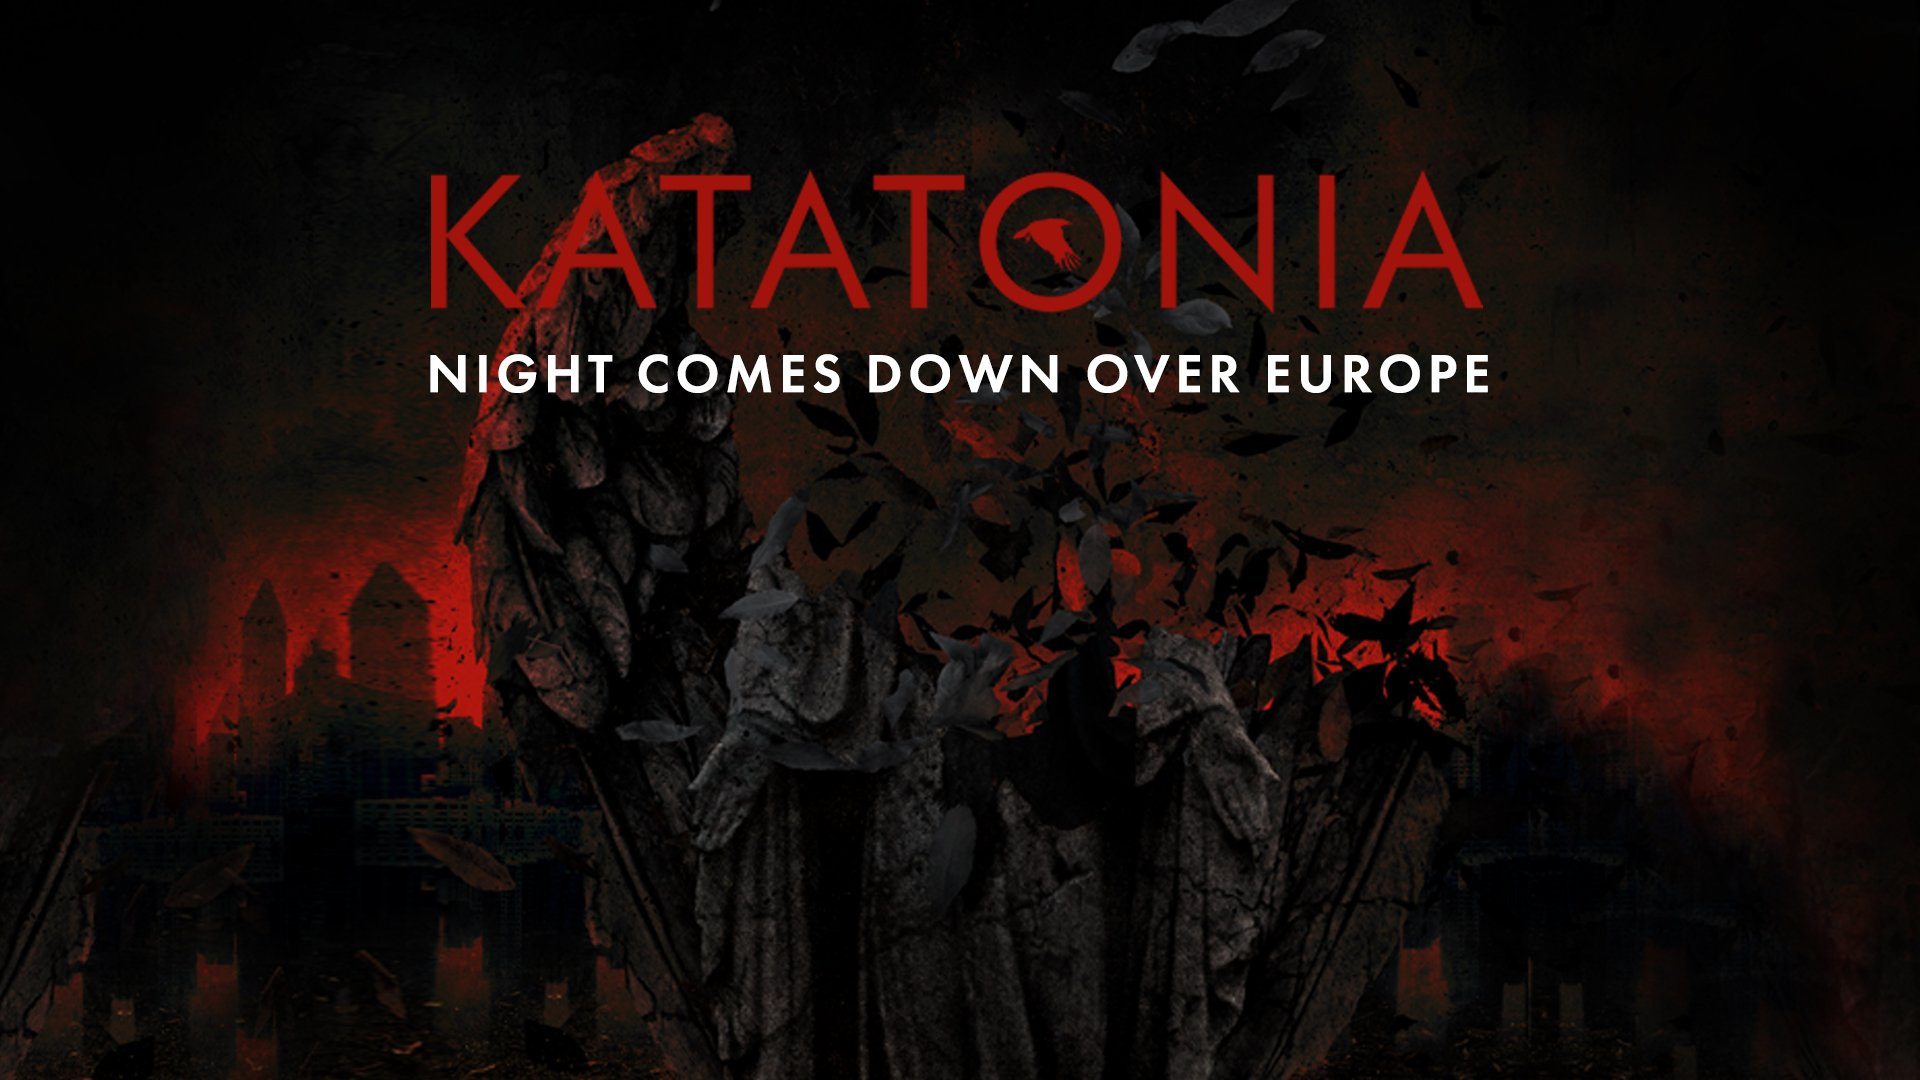 KATATONIA1920X1080NO_INFO